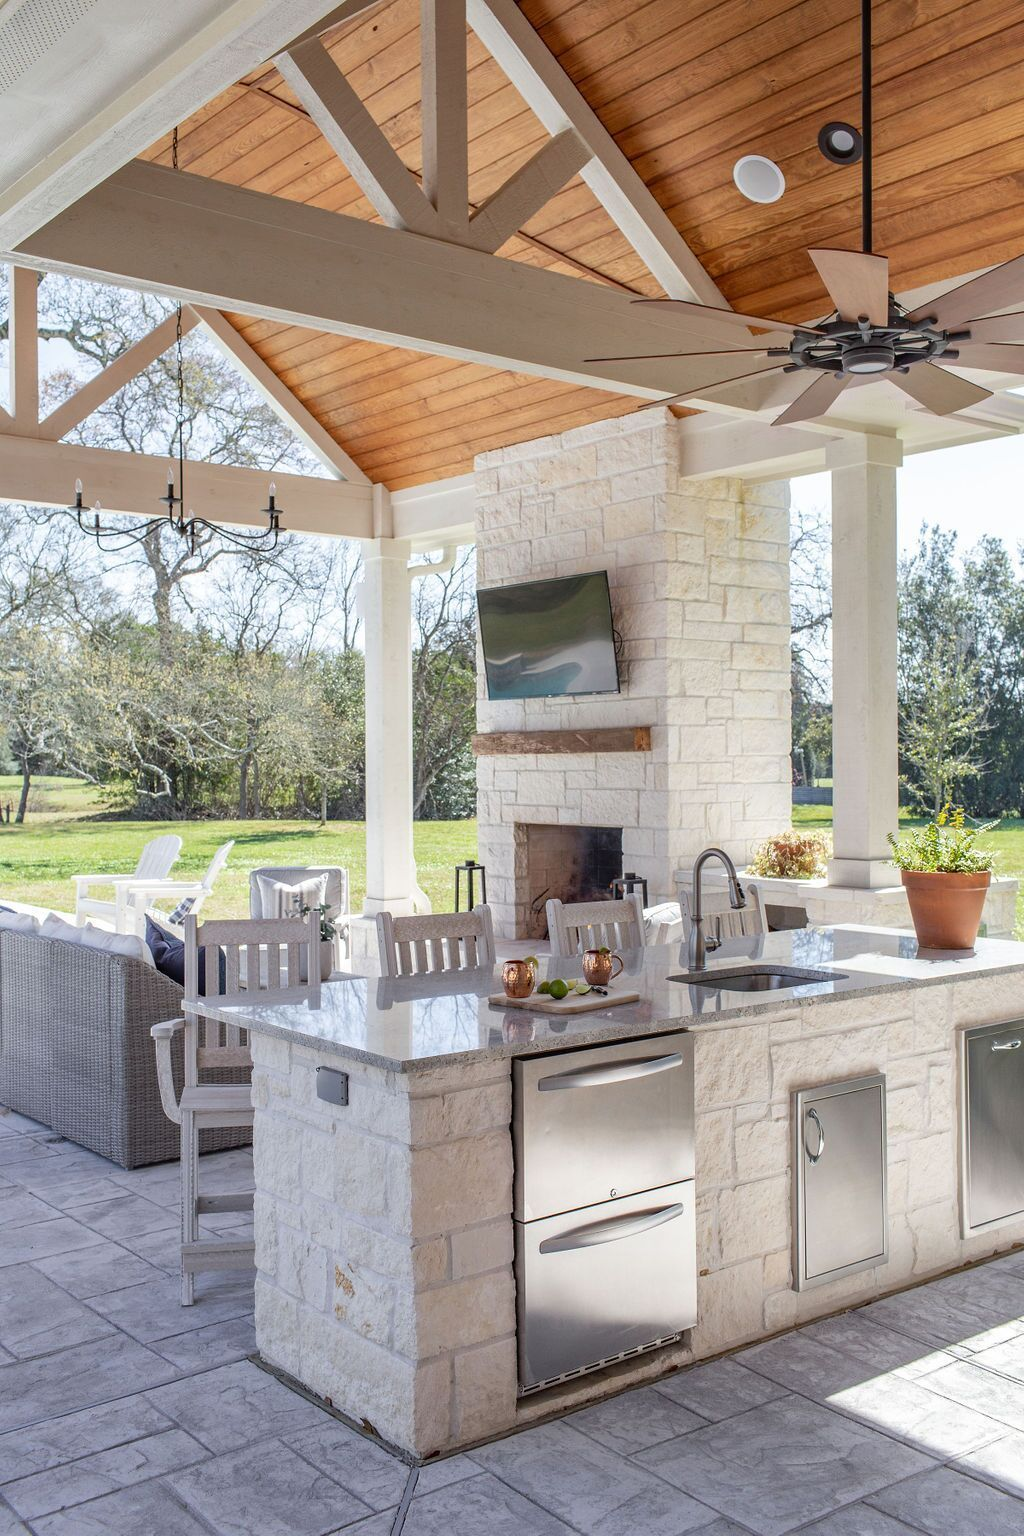 Outdoor Living Area Designed By Moore House Interiors Of Tomball Texas In 2020 Moore House Living Area Design Outdoor Living